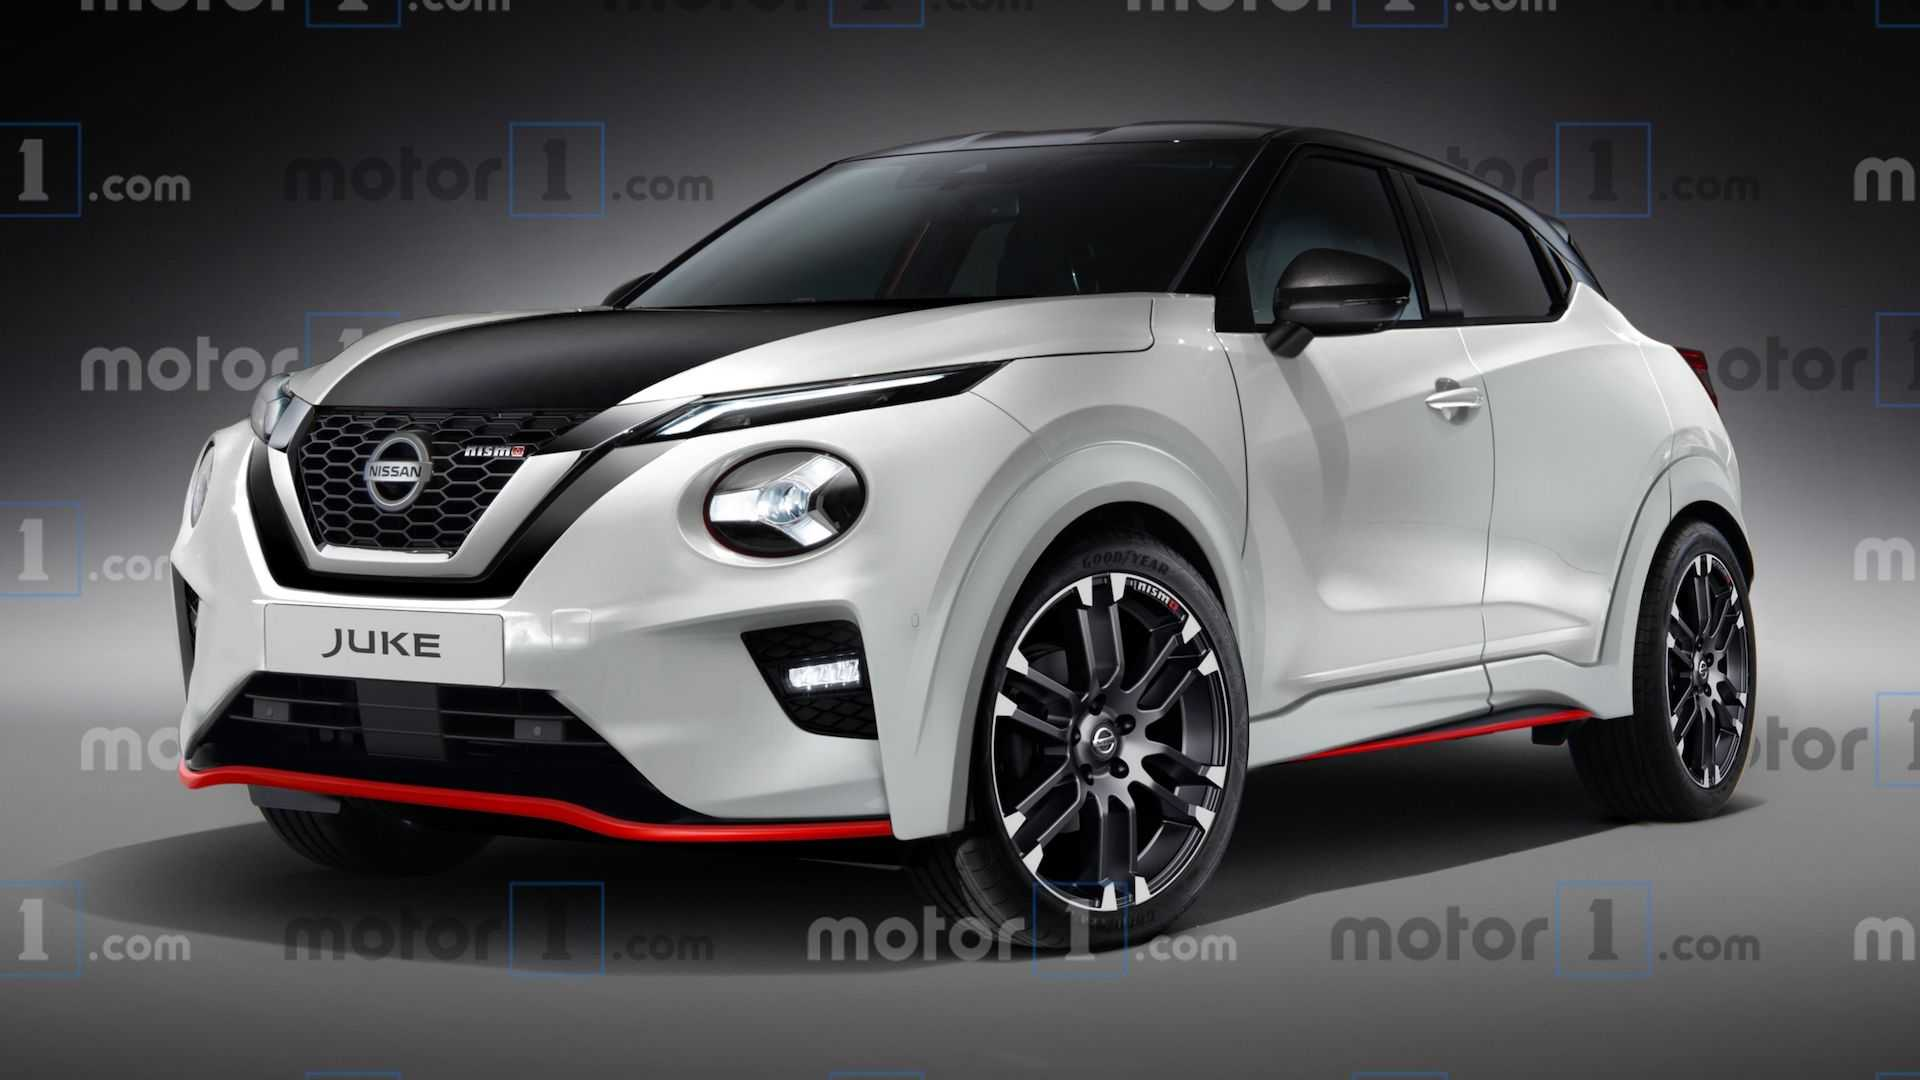 Nissan Juke Nismo >> Nissan Juke Gets Nismo Makeover In Exclusive Rendering